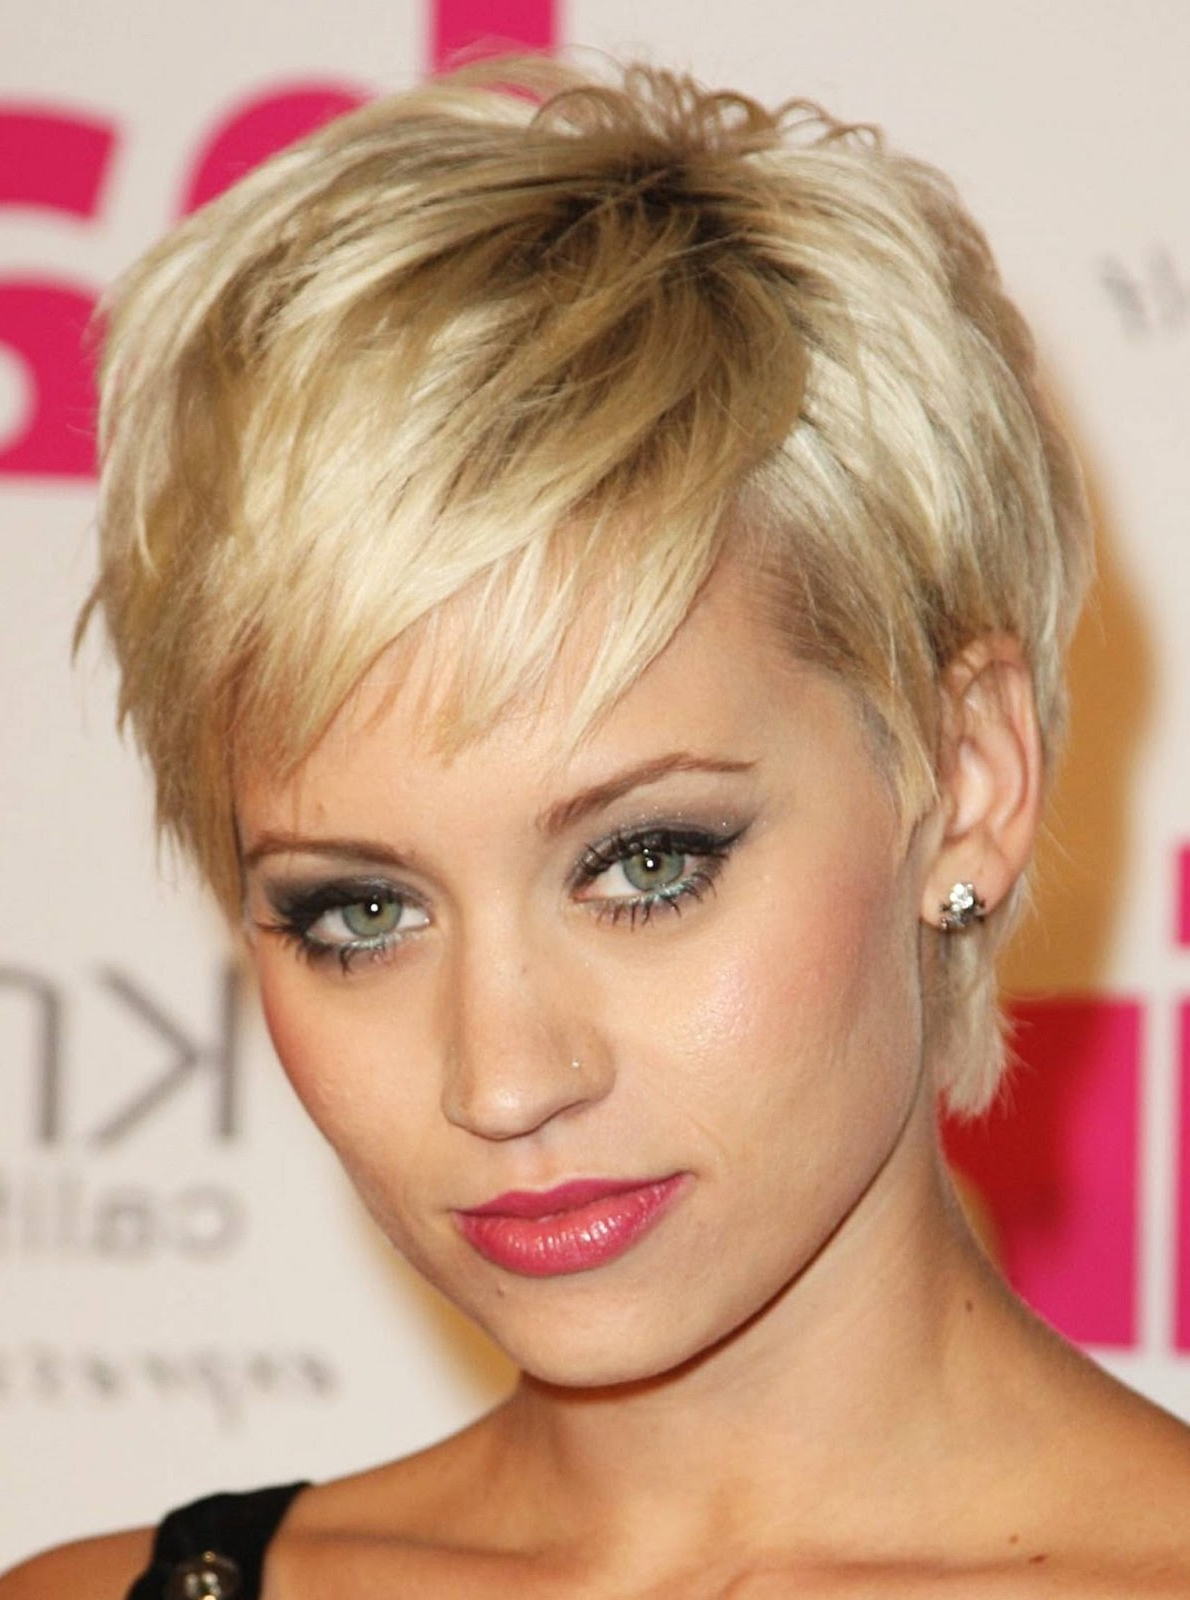 Short Hairstyles Summer 2014 – Hairstyle For Women & Man Throughout Short Hairstyles For Summer (View 8 of 25)